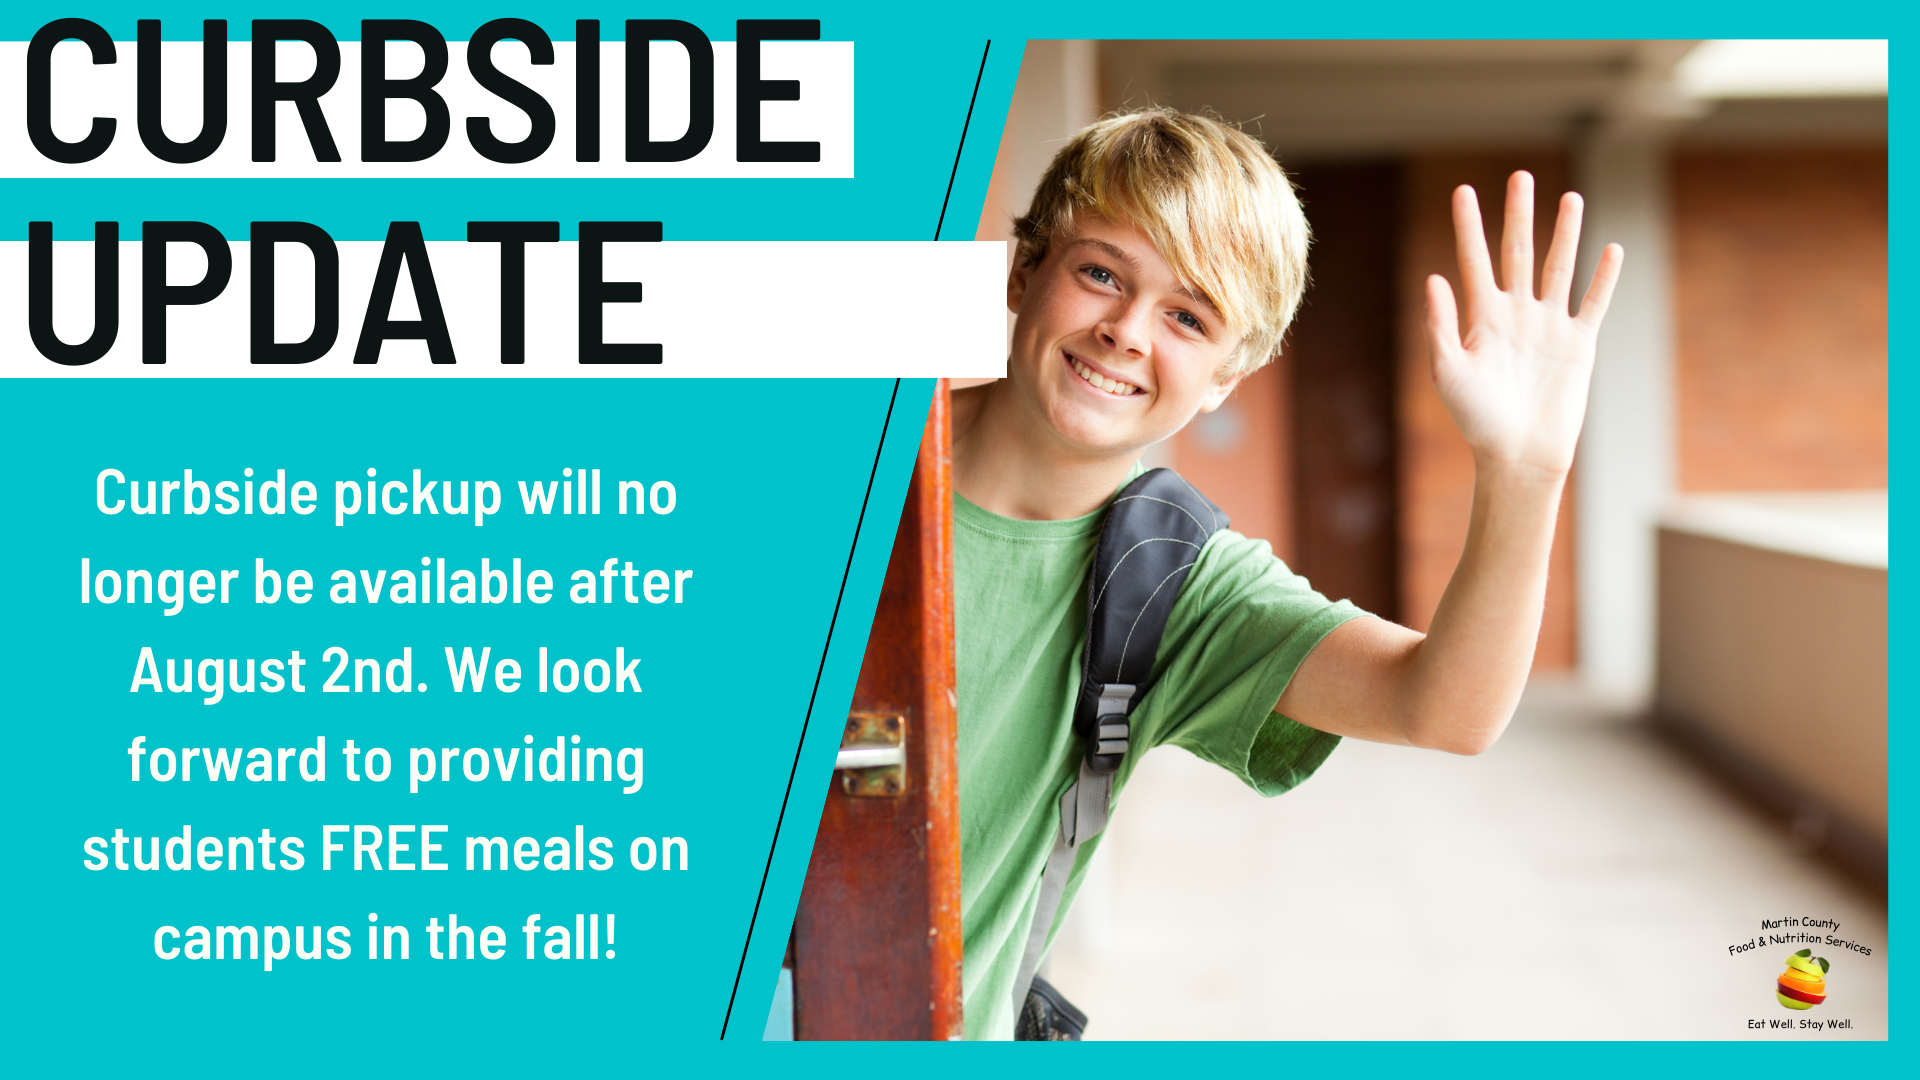 Food & Nutrition Services update